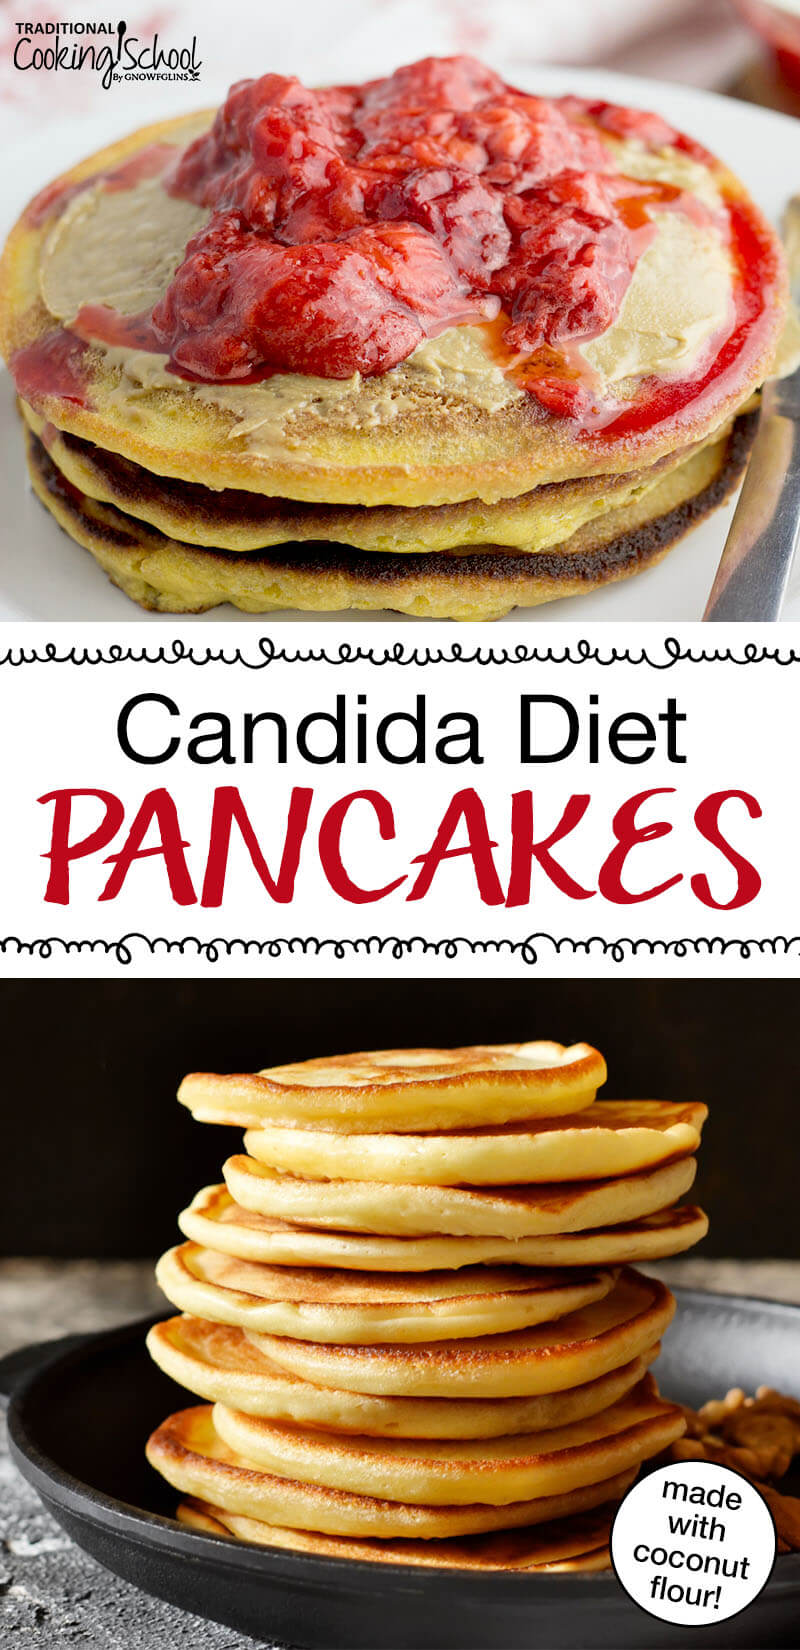 "Pinterest pin with two images, the top image is of three pancakes topped with jam. The bottom image is of a stack of pancakes in a cast iron pan. Text overlay says ""Candida Diet Pancakes - made with coconut flour!"""